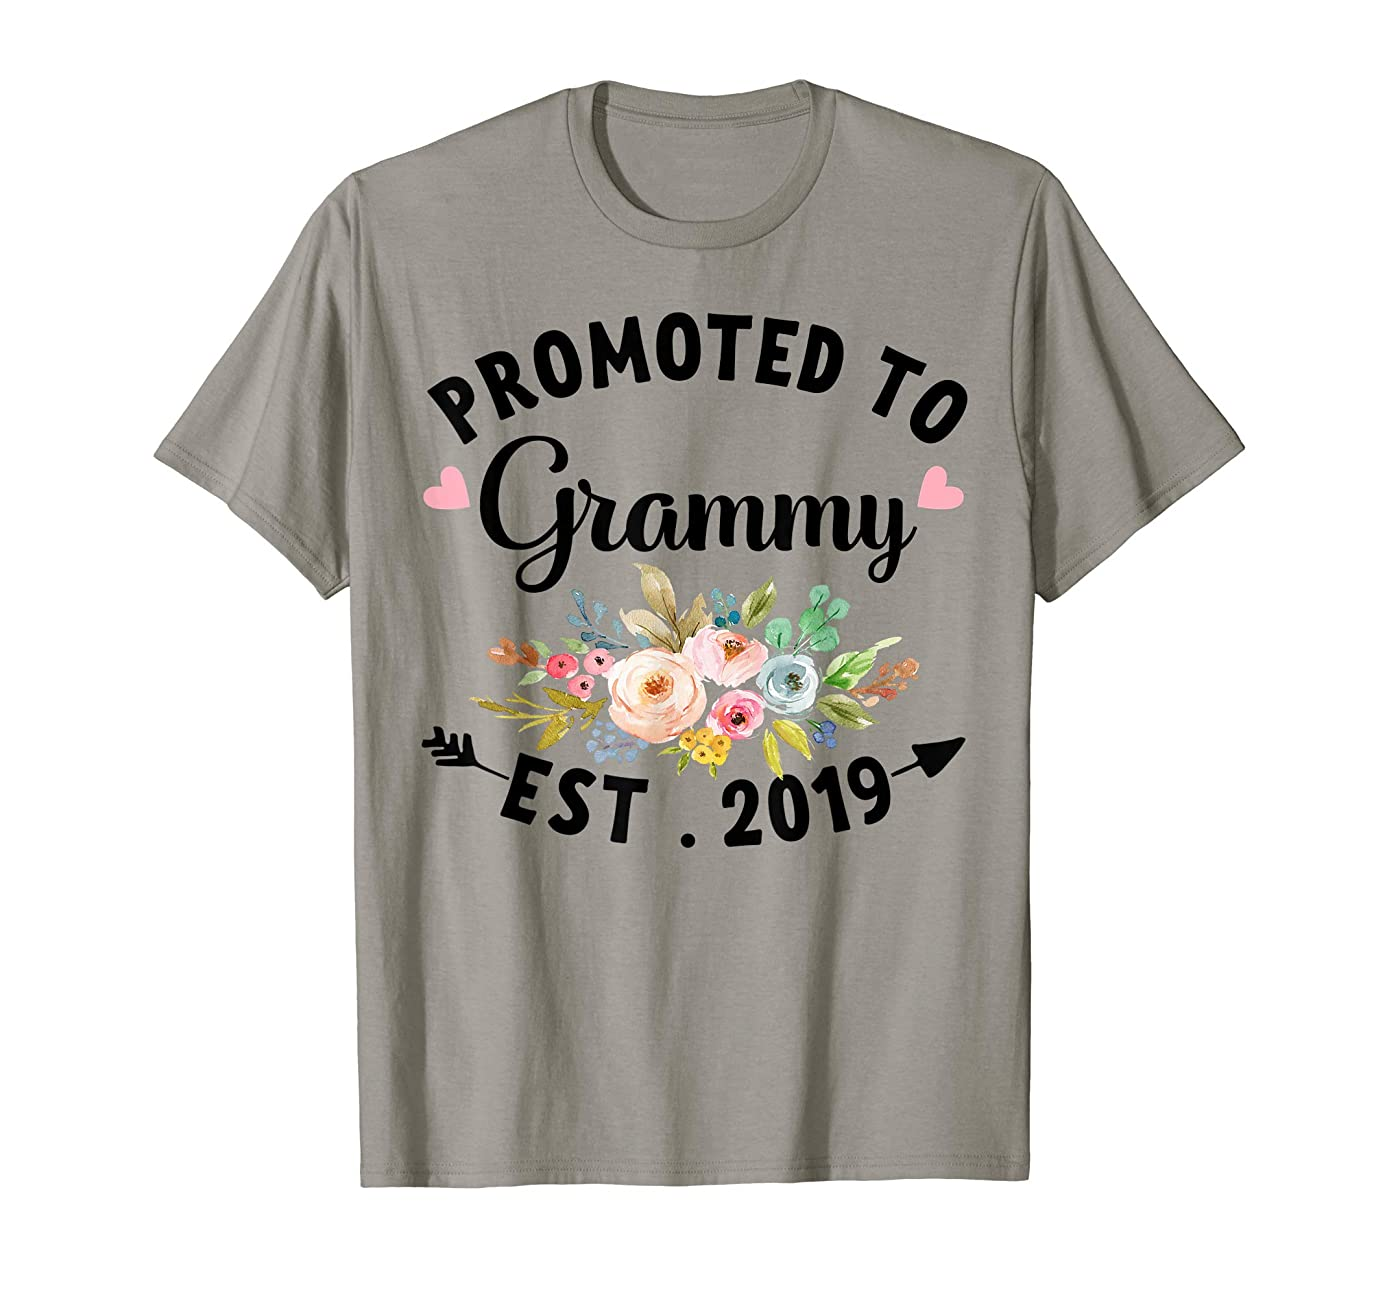 Promoted to Grammy est 2019 Baby announcement Shirt